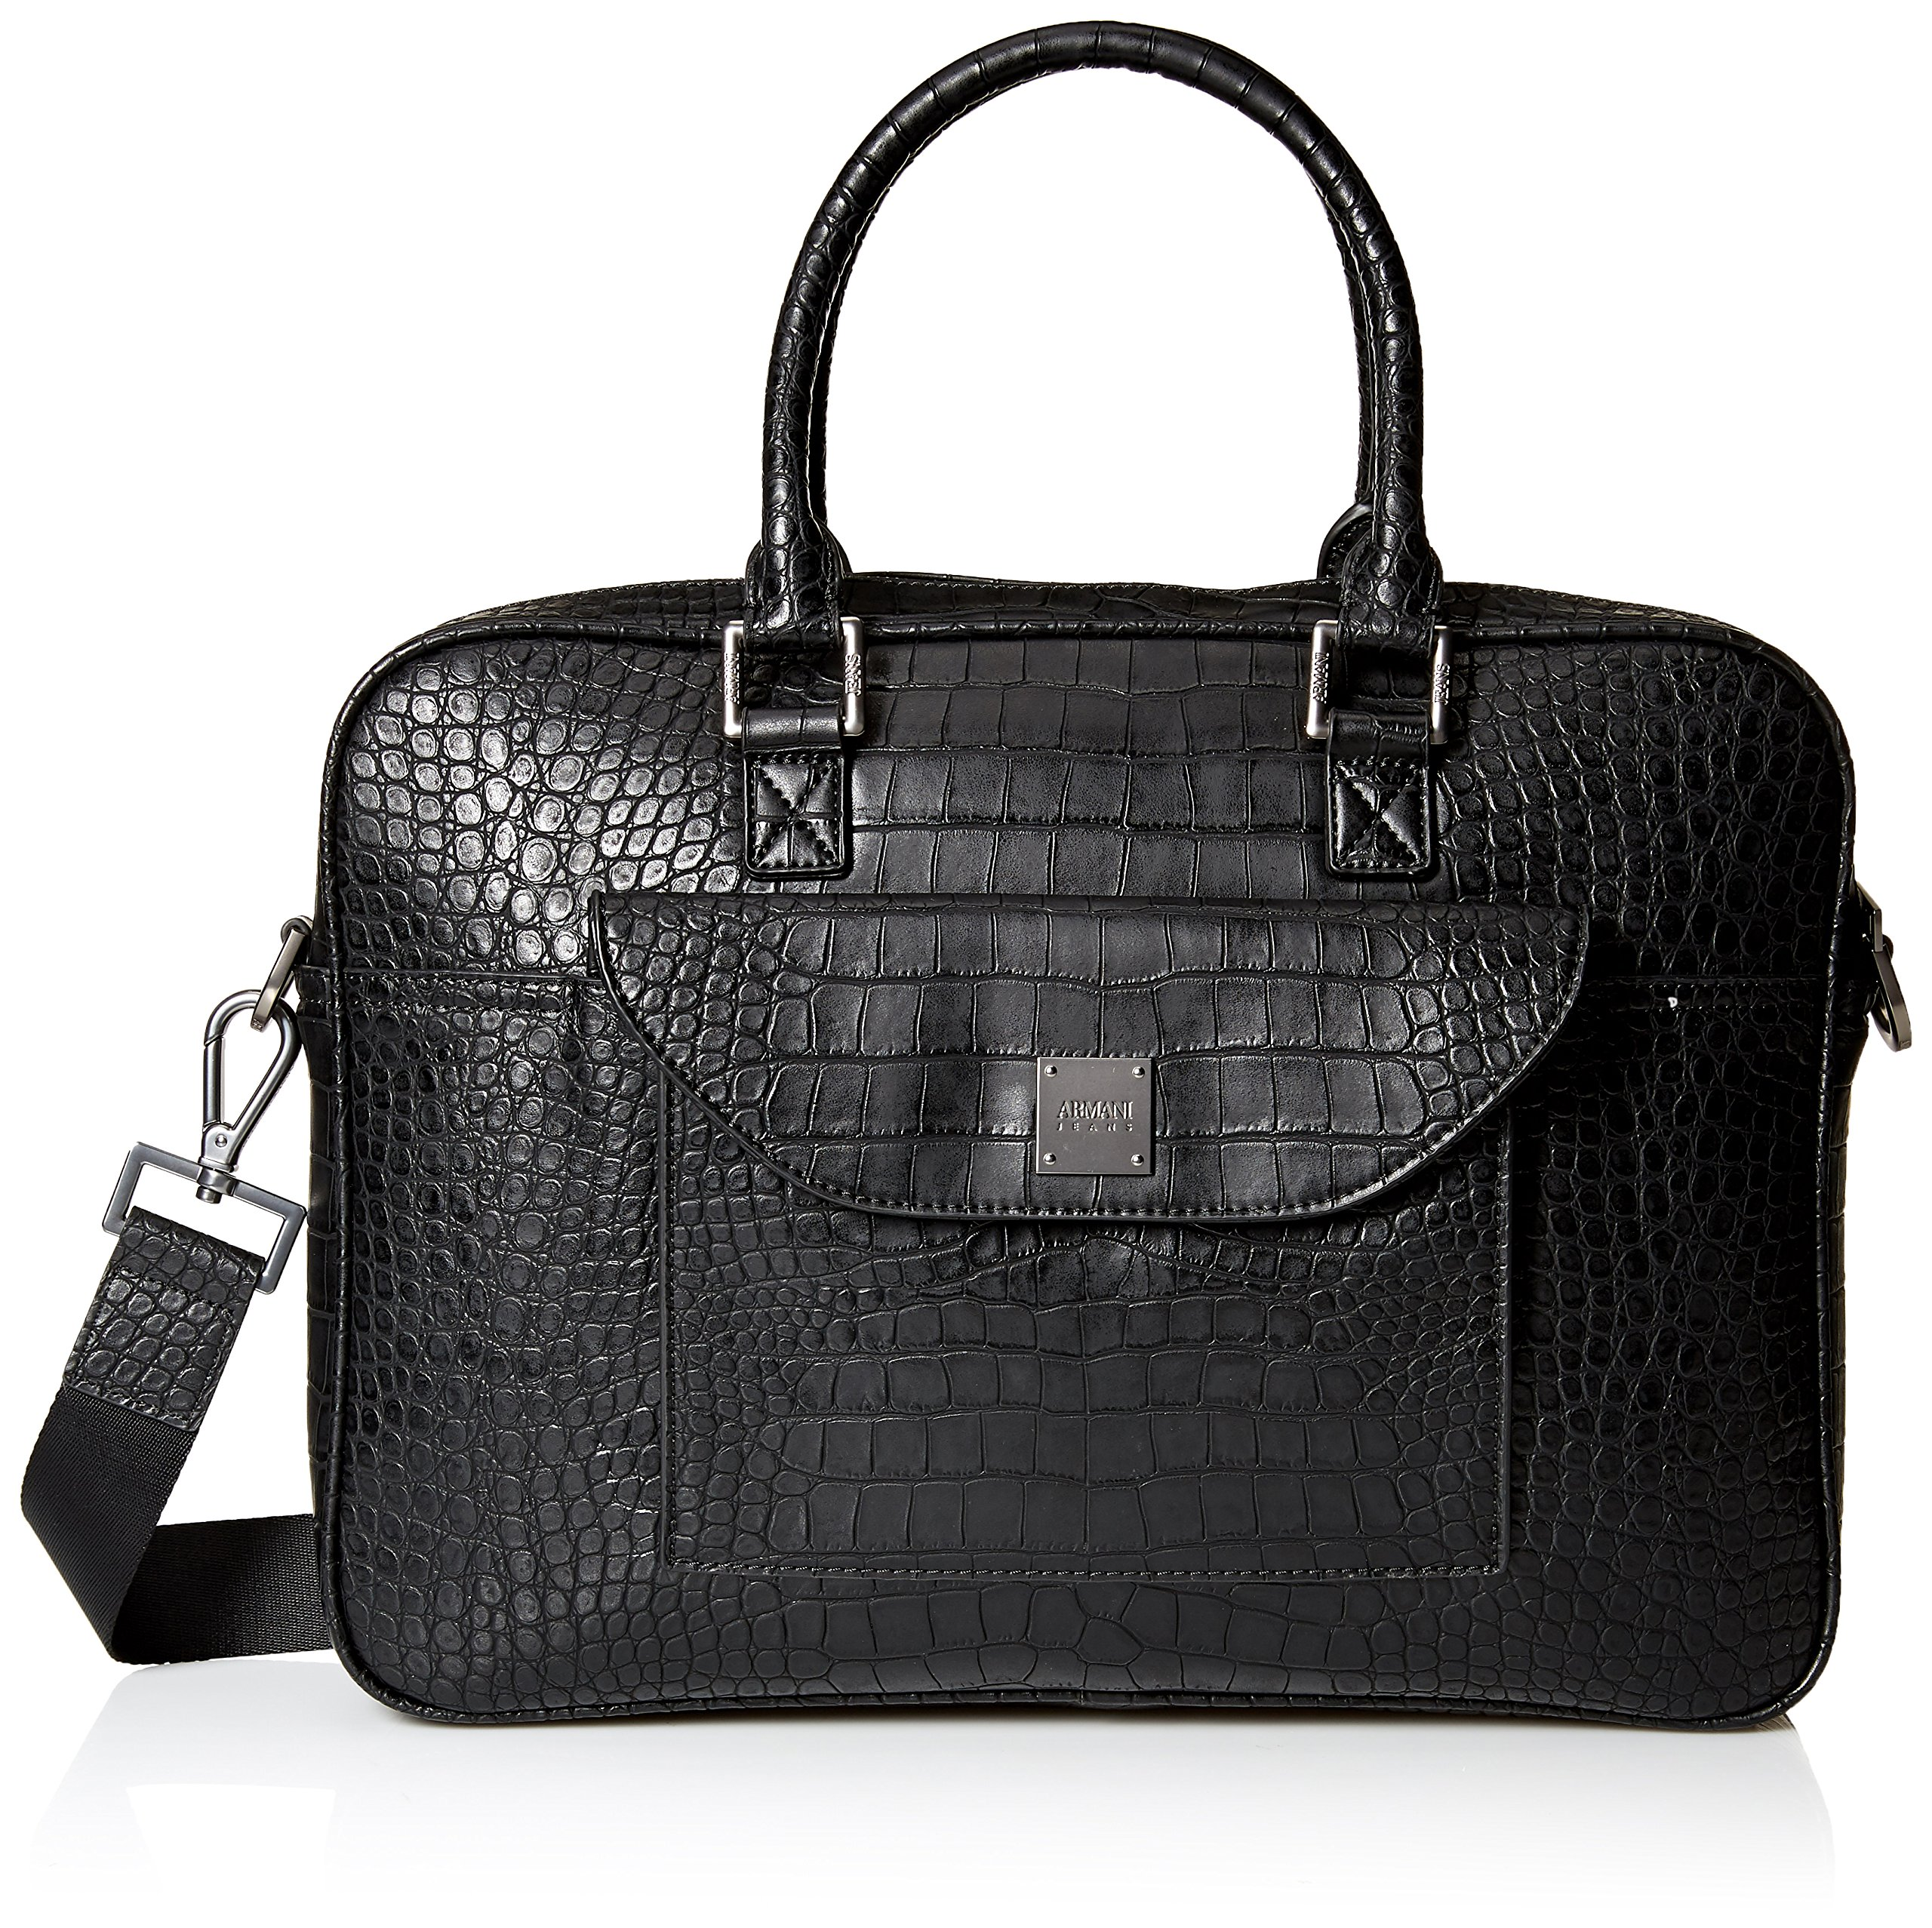 Armani Jeans Men's Croco Embossed Briefcase with Laptop Compartment by ARMANI JEANS